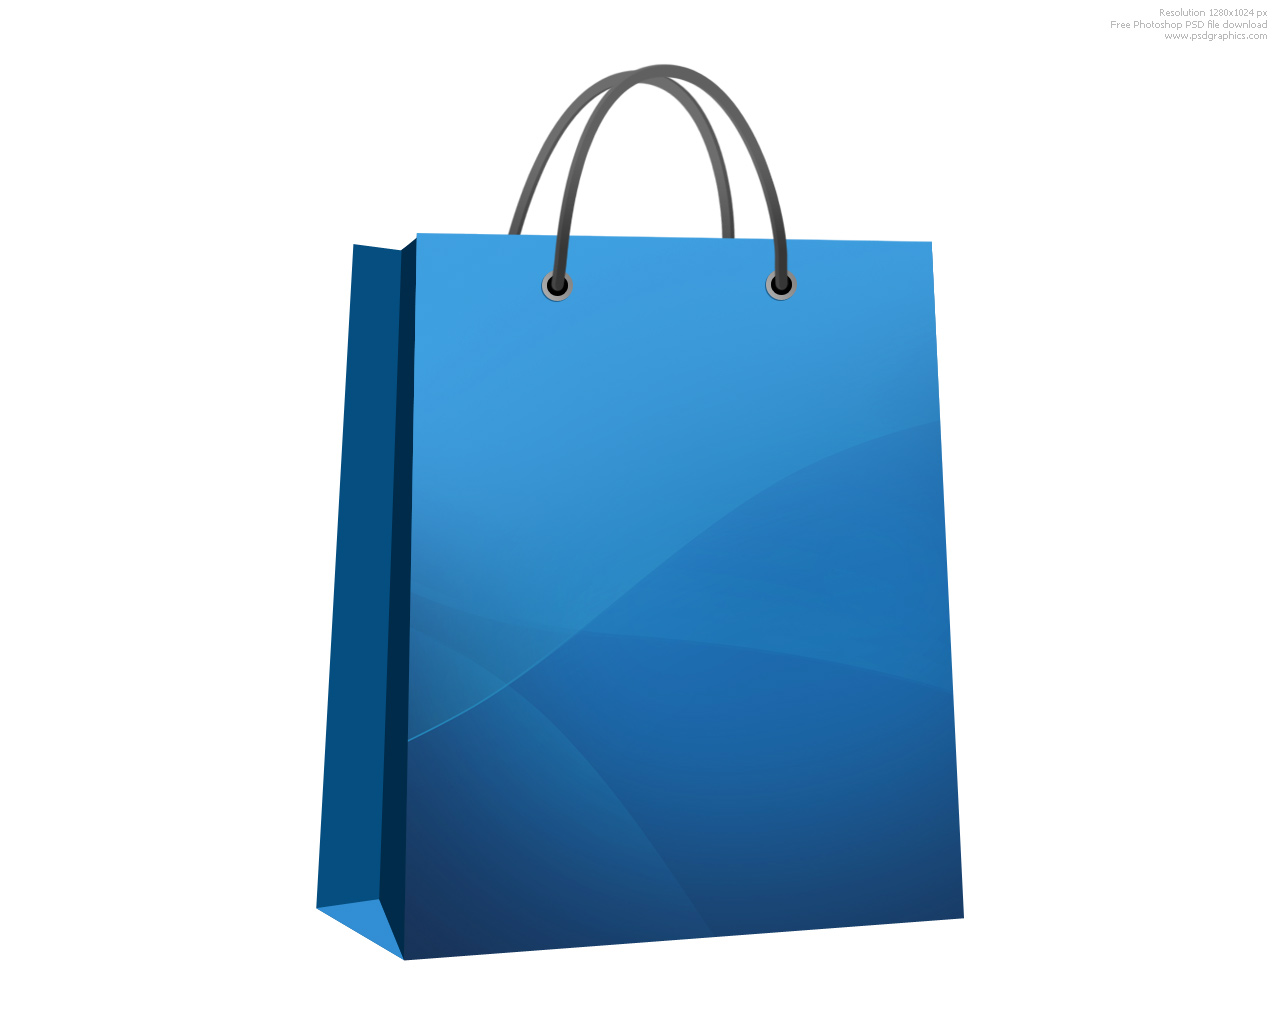 Shopping bag clipart 6